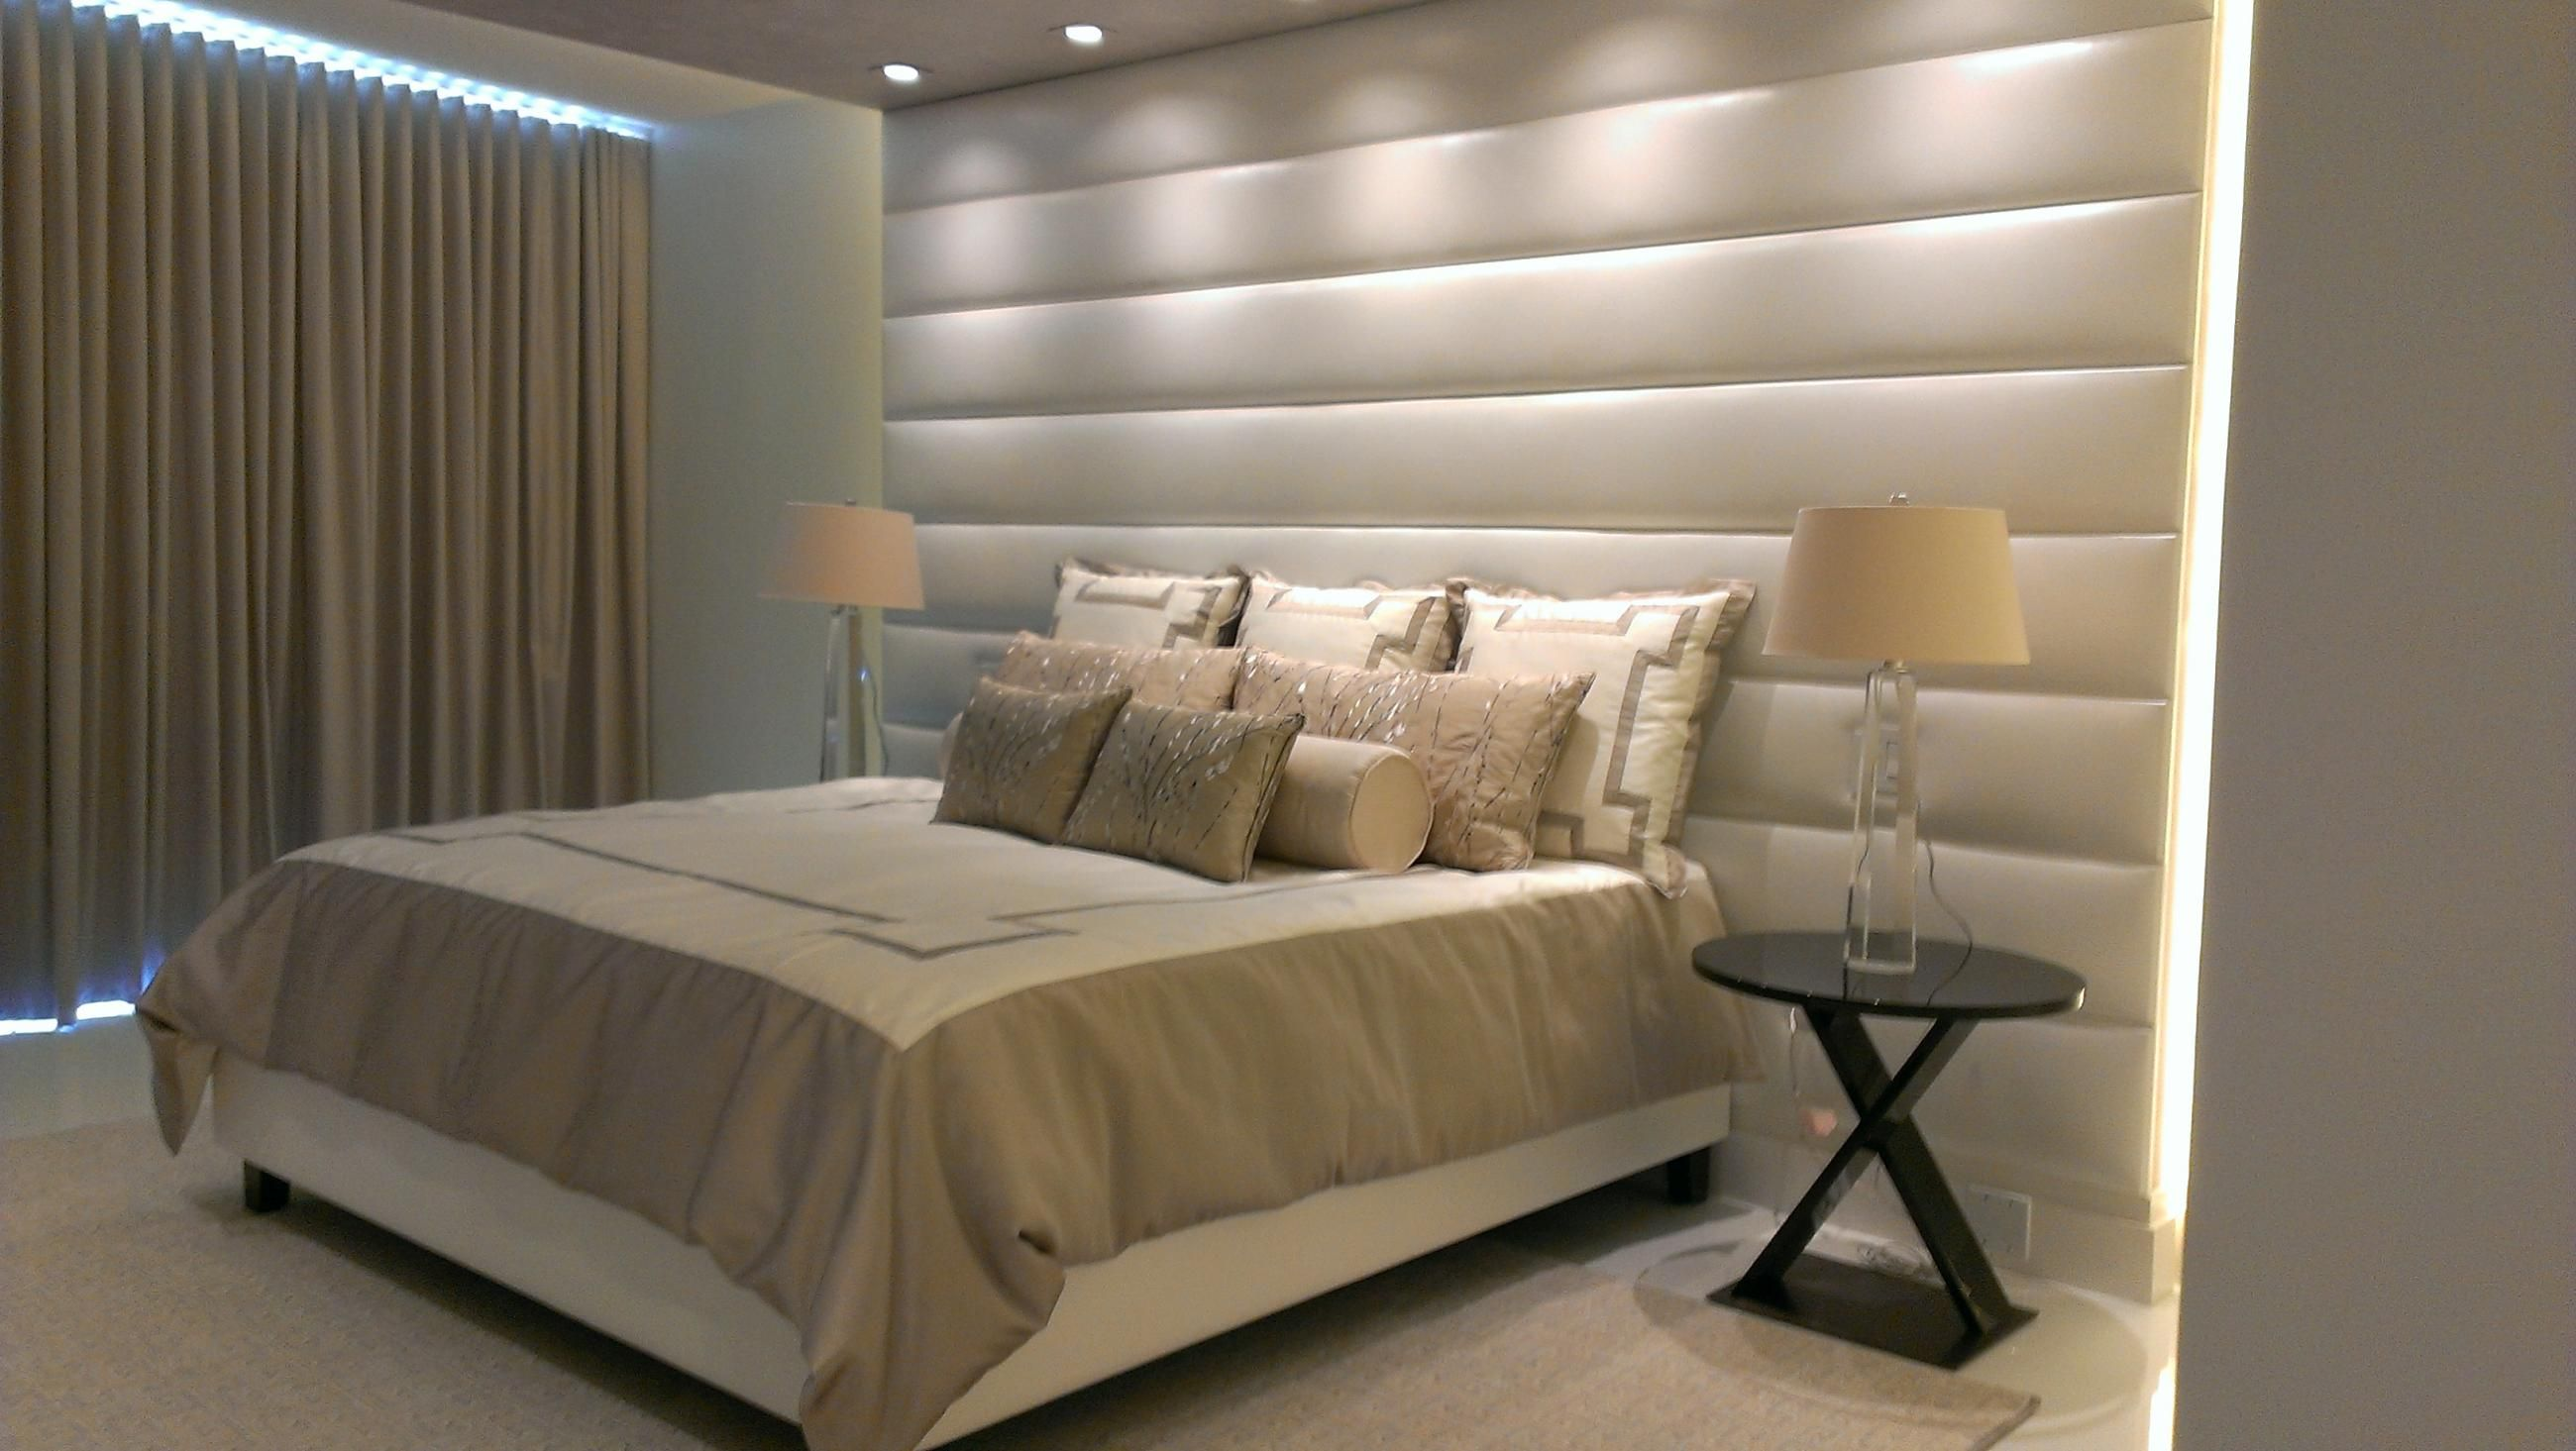 Wall mounted upholstered headboard panels with for Bedroom ideas headboard